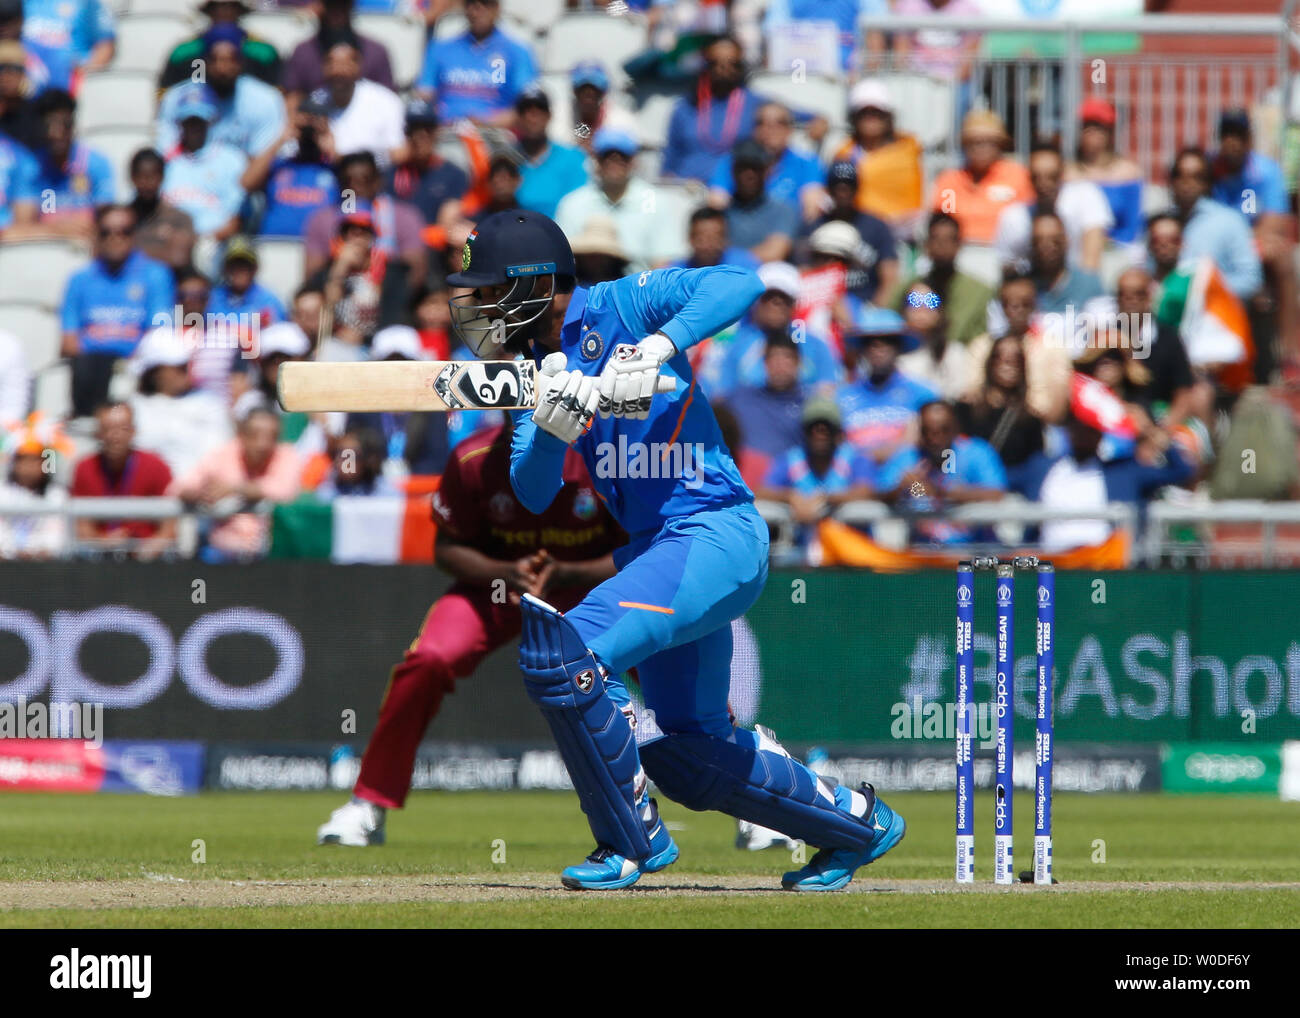 Old Trafford, Manchester, UK. 27th June, 2019. ICC World Cup cricket, West Indies versus India; KL Rahul of India pushes a ball away to the off side Credit: Action Plus Sports/Alamy Live News - Stock Image